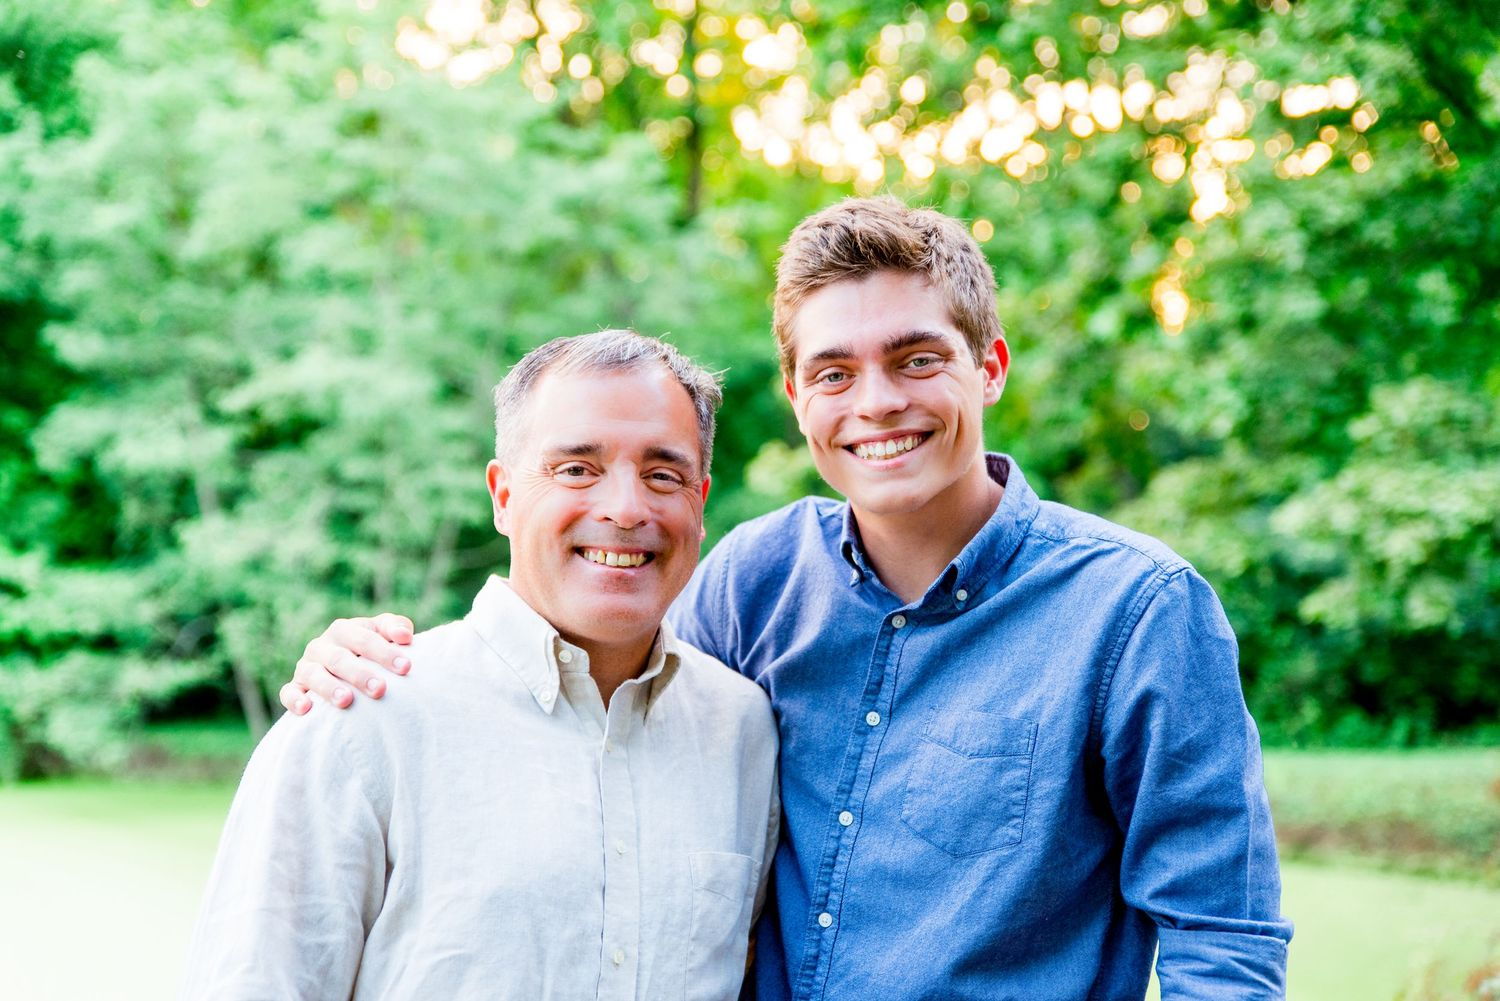 father and son, family photos, outdoors, smiling, summer, Cincinnati OH